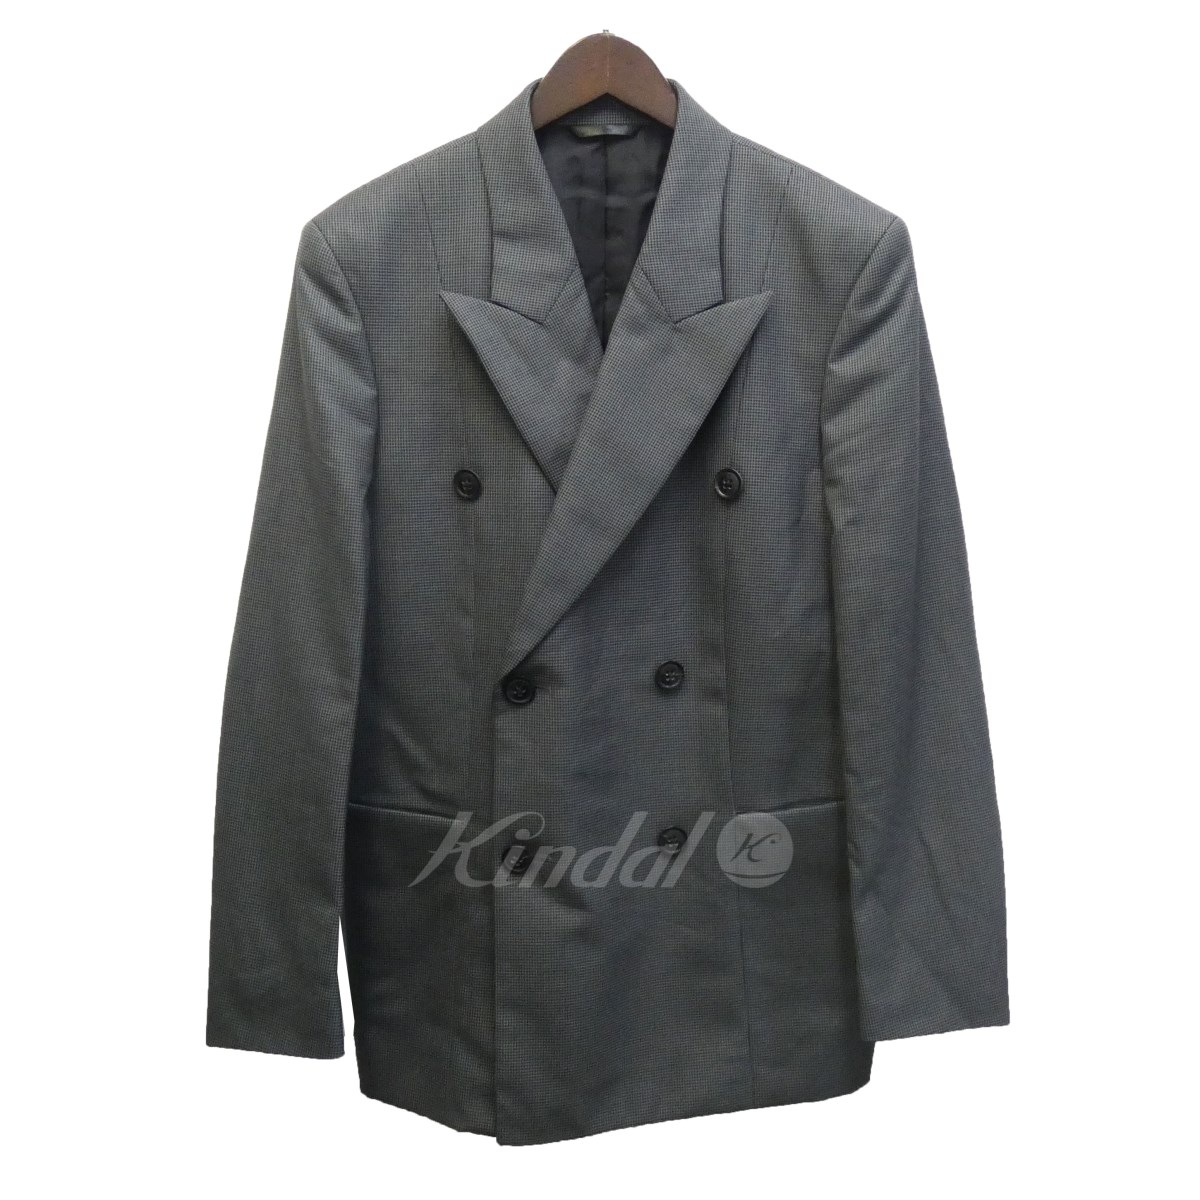 【中古】Paul Smith 15AW 「HOUNDTOOTH DOUBLE-BREASTED JACKET」千鳥格子ジャケット 【送料無料】 【107924】 【KIND1550】